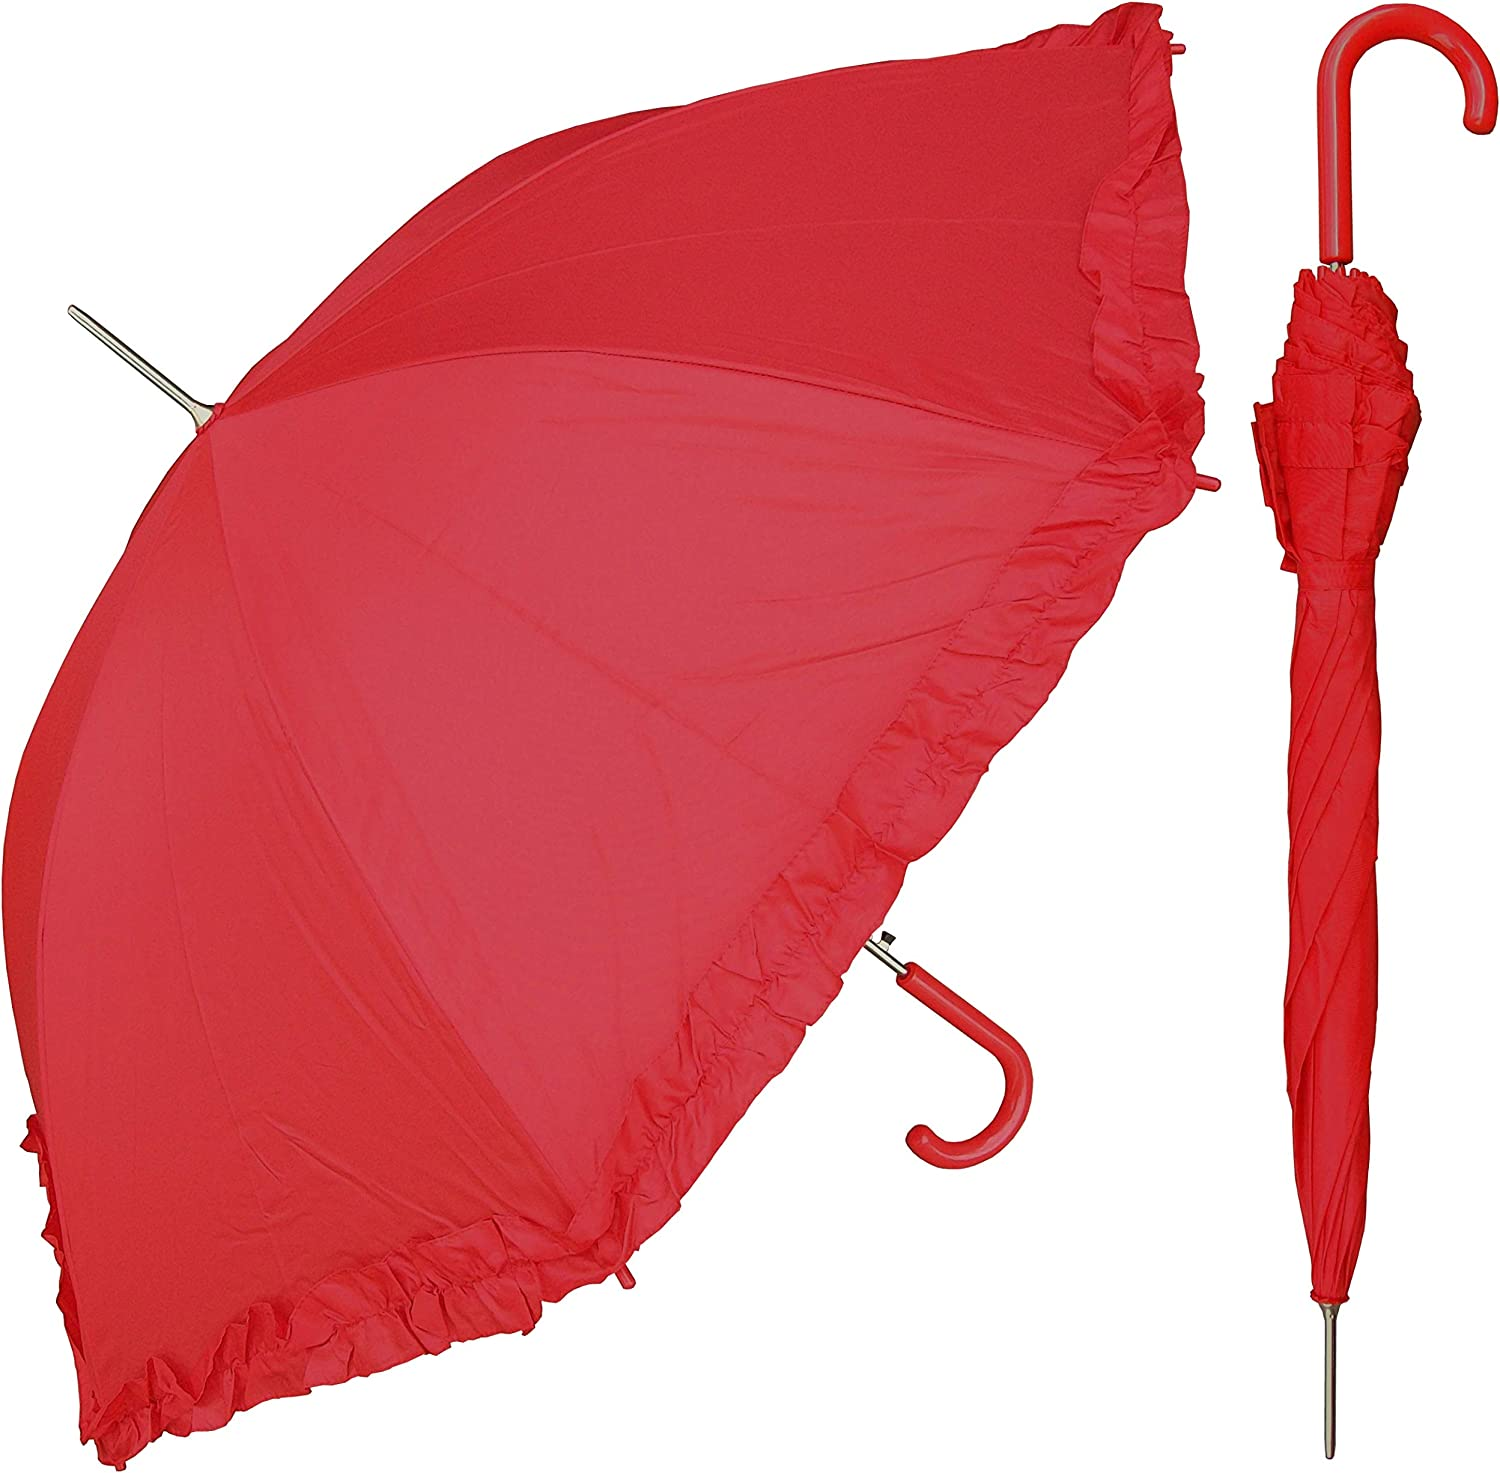 RainStoppers Women's Our shop most popular 67% OFF of fixed price Open Parasol Ruffle Umbrella with